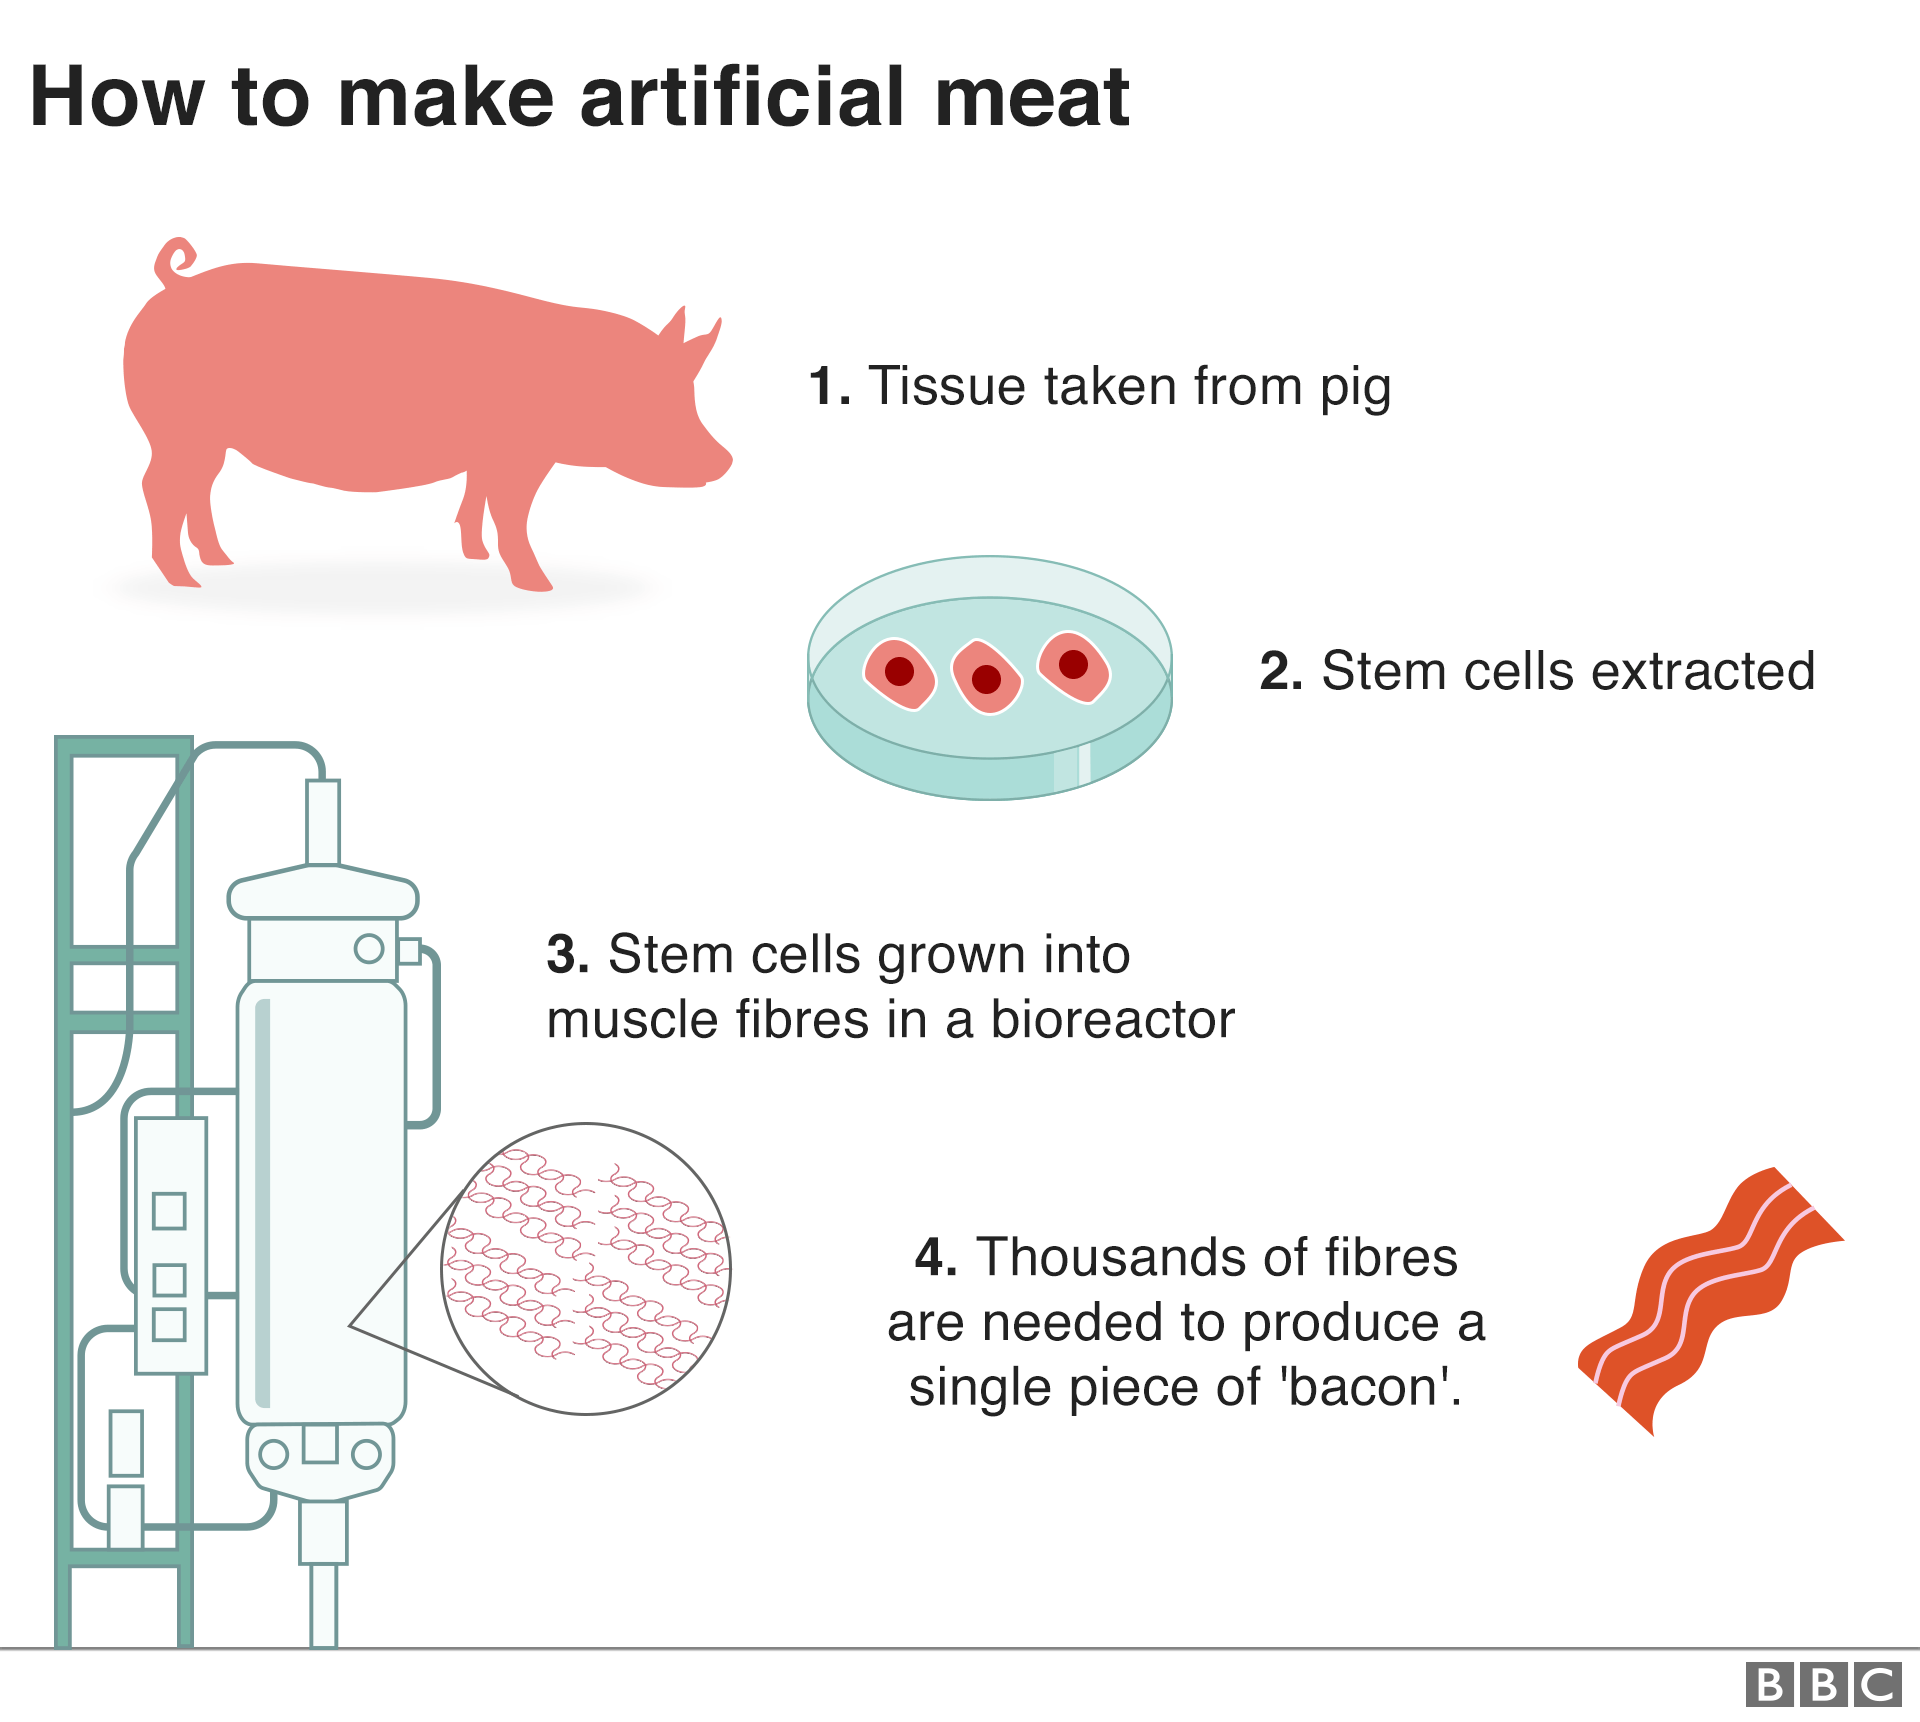 Cultured Meat: A new alternative that meets the need for 'meat'